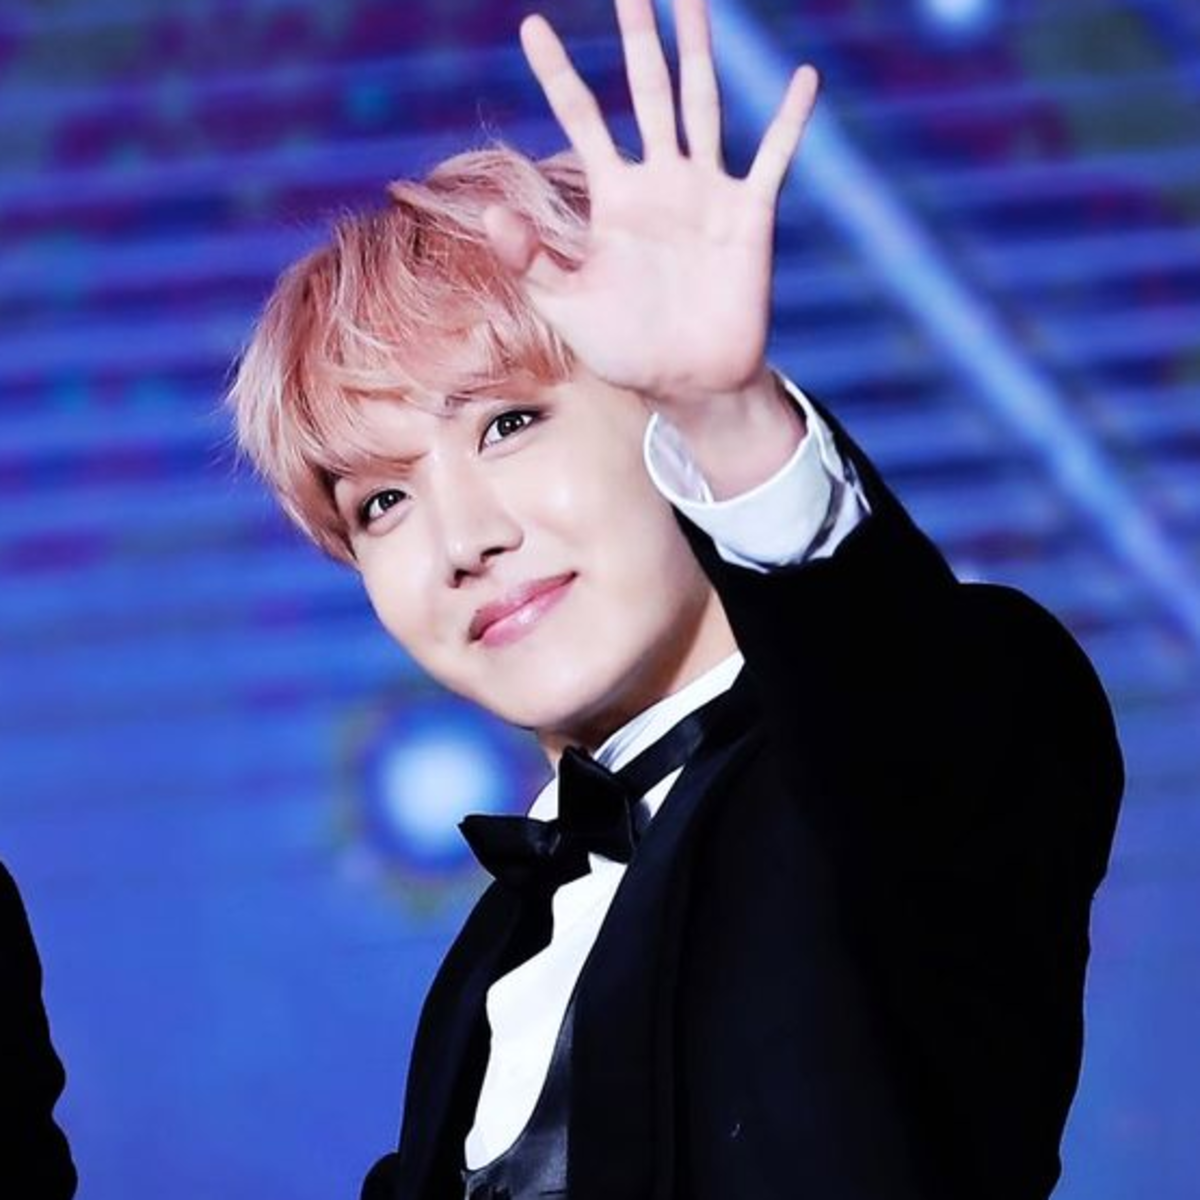 10-facts-and-profile-about-bts-member-j-hope-jung-hoseok